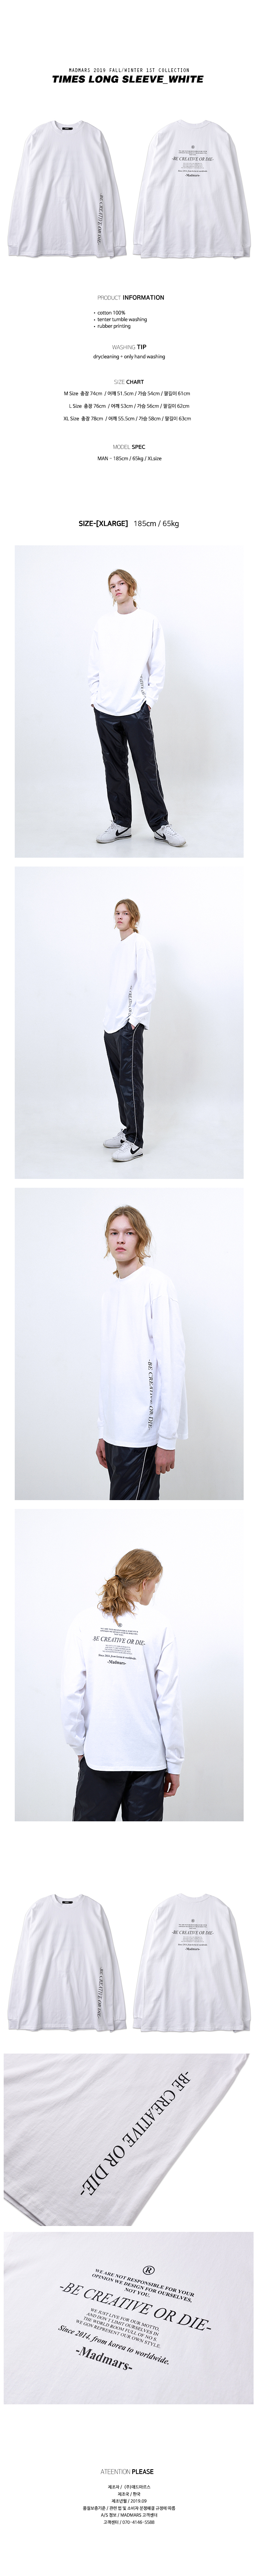 TIMES LONG SLEEVE_WHITE.jpg